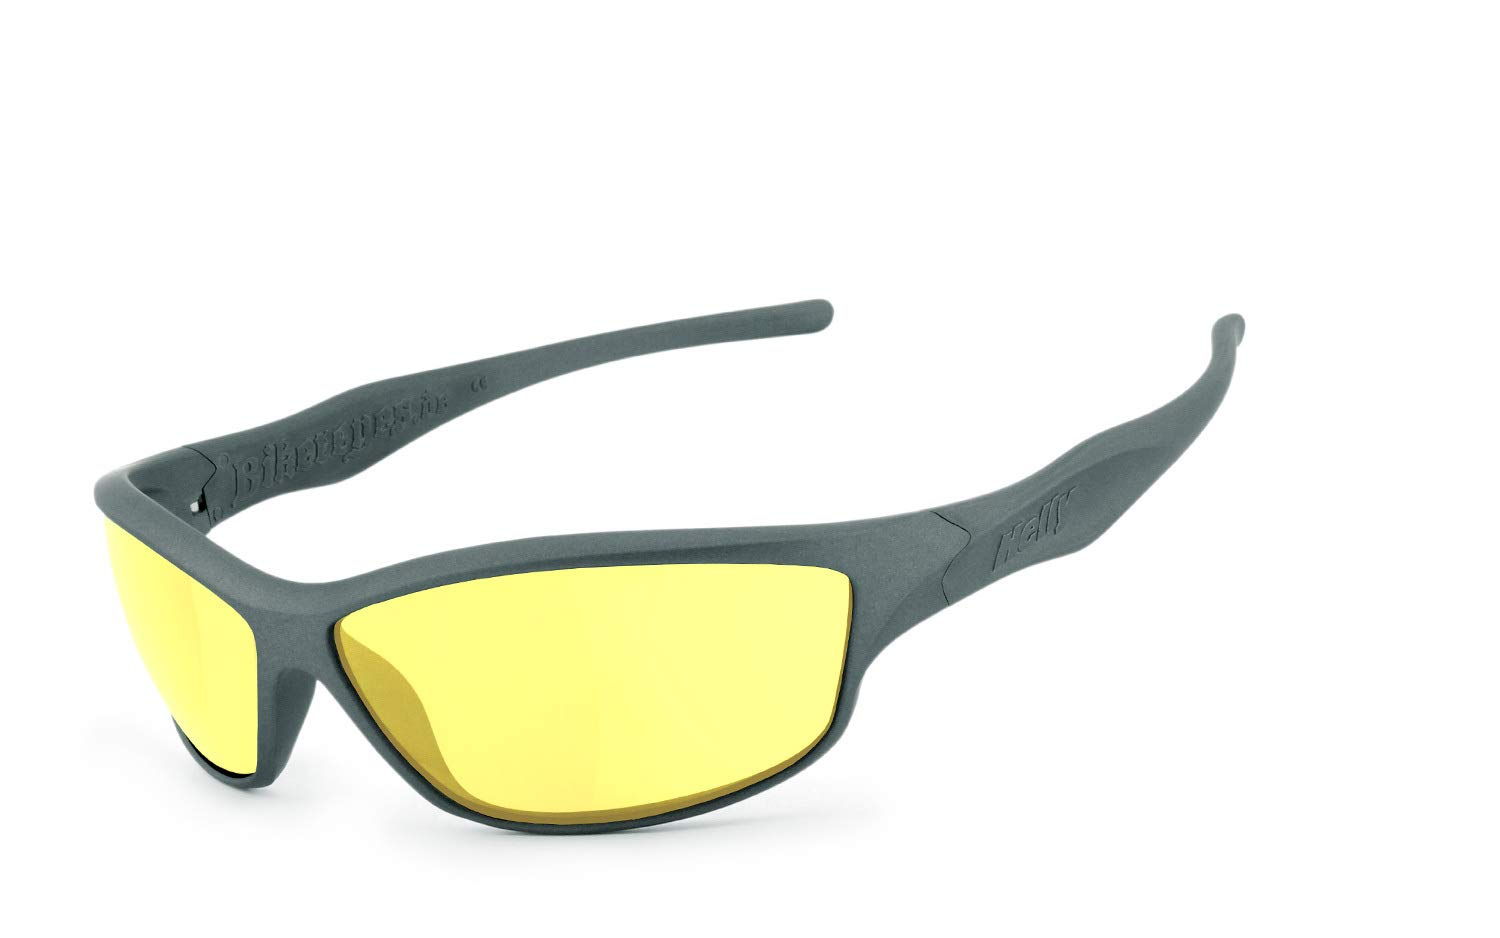 Matte Grey Glasses Helly/® No.1 Bikereyes/® H-FLEX/® Unbreakable UV400 Protective Filter Night Vision HLT/® Plastic Safety Glass in accordance with DIN EN 166 Biker Glasses Frame Fender 2.0